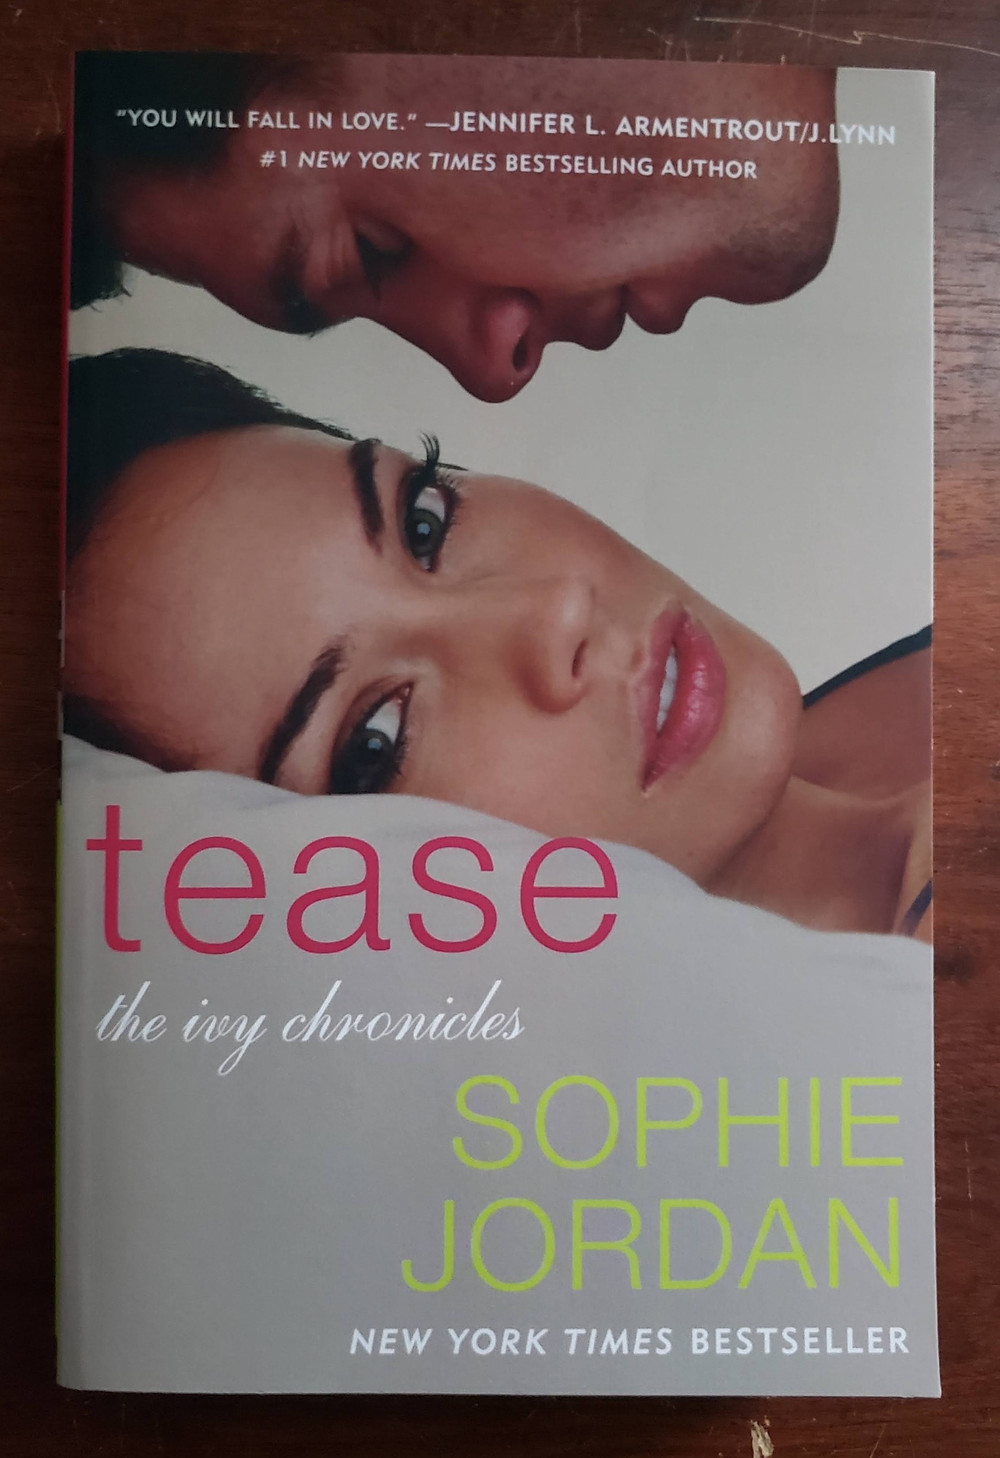 Front image of the book cover for Tease by Sophie Jordan.